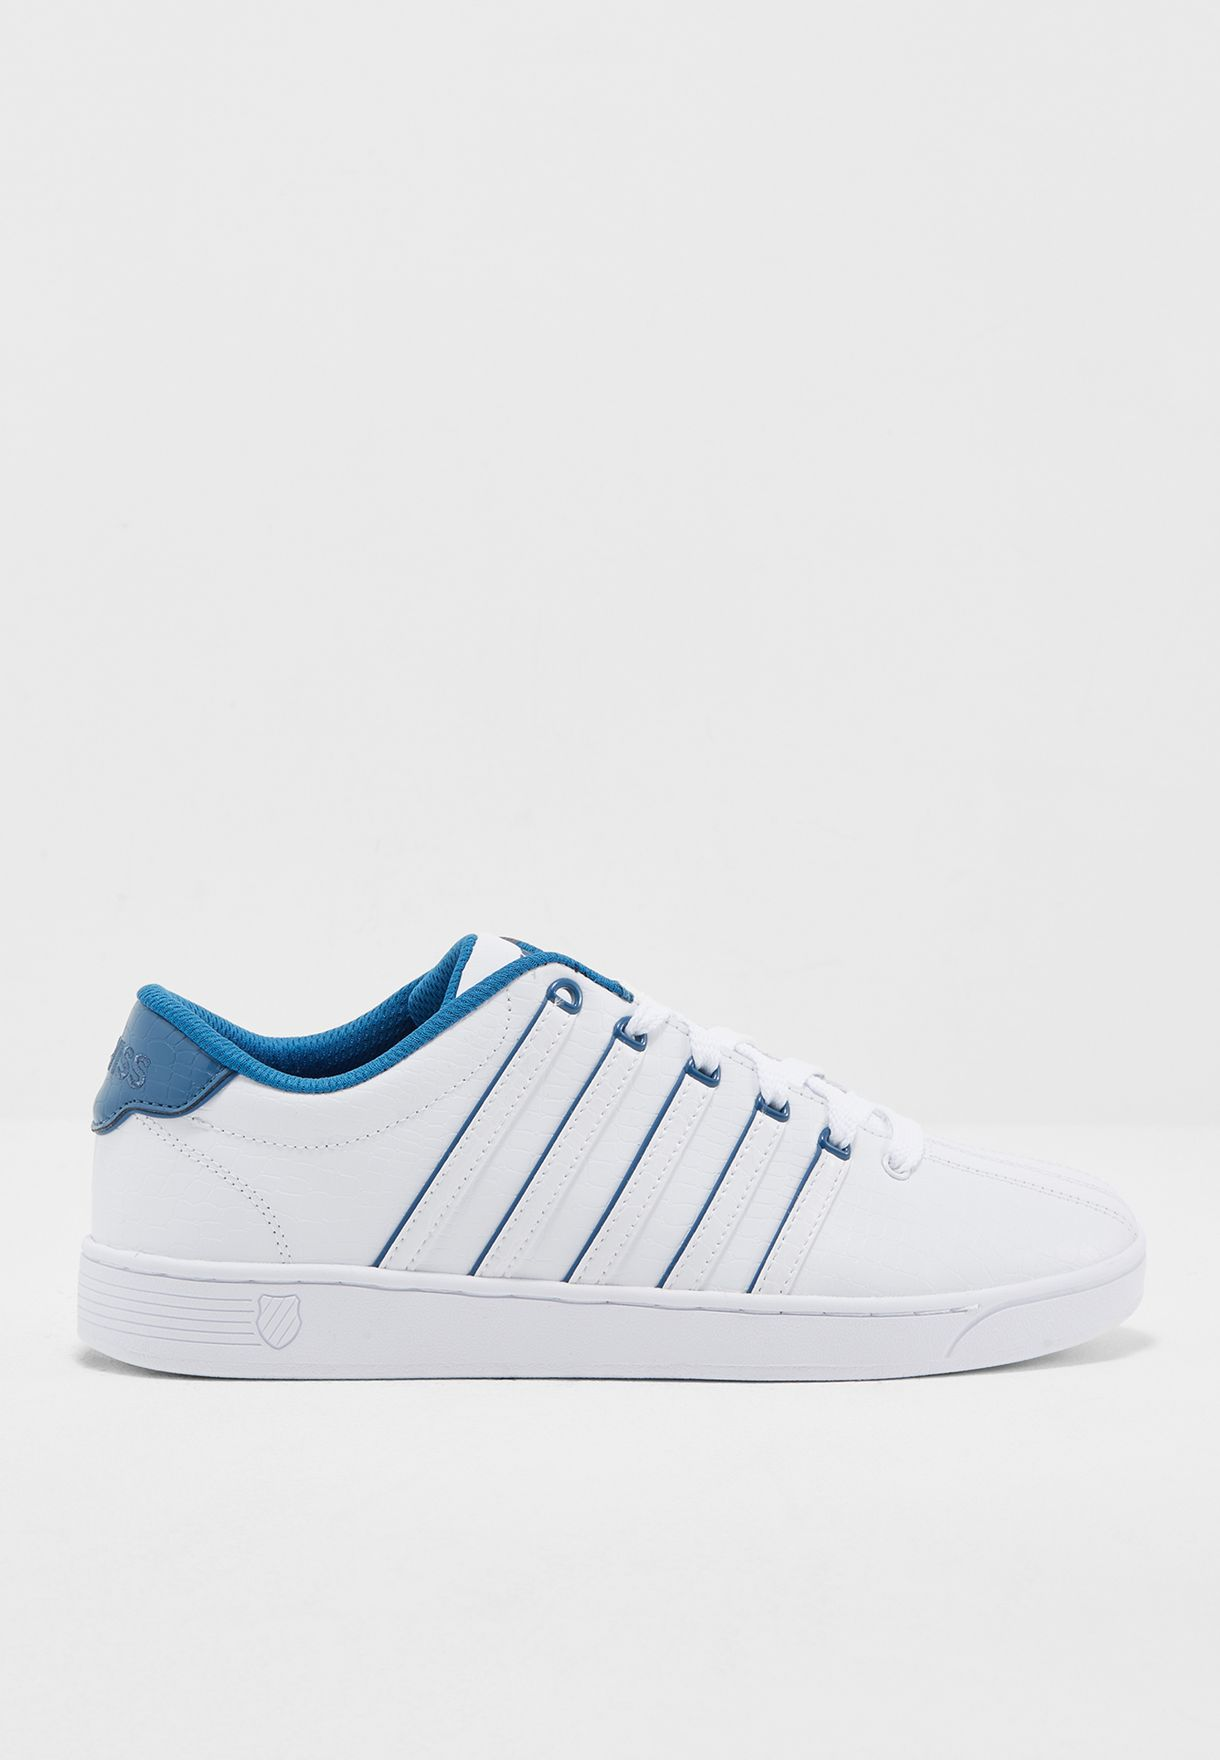 37317174b1787c Shop K Swiss white Court Pro Sneakers 05063-126 for Men in Saudi ...